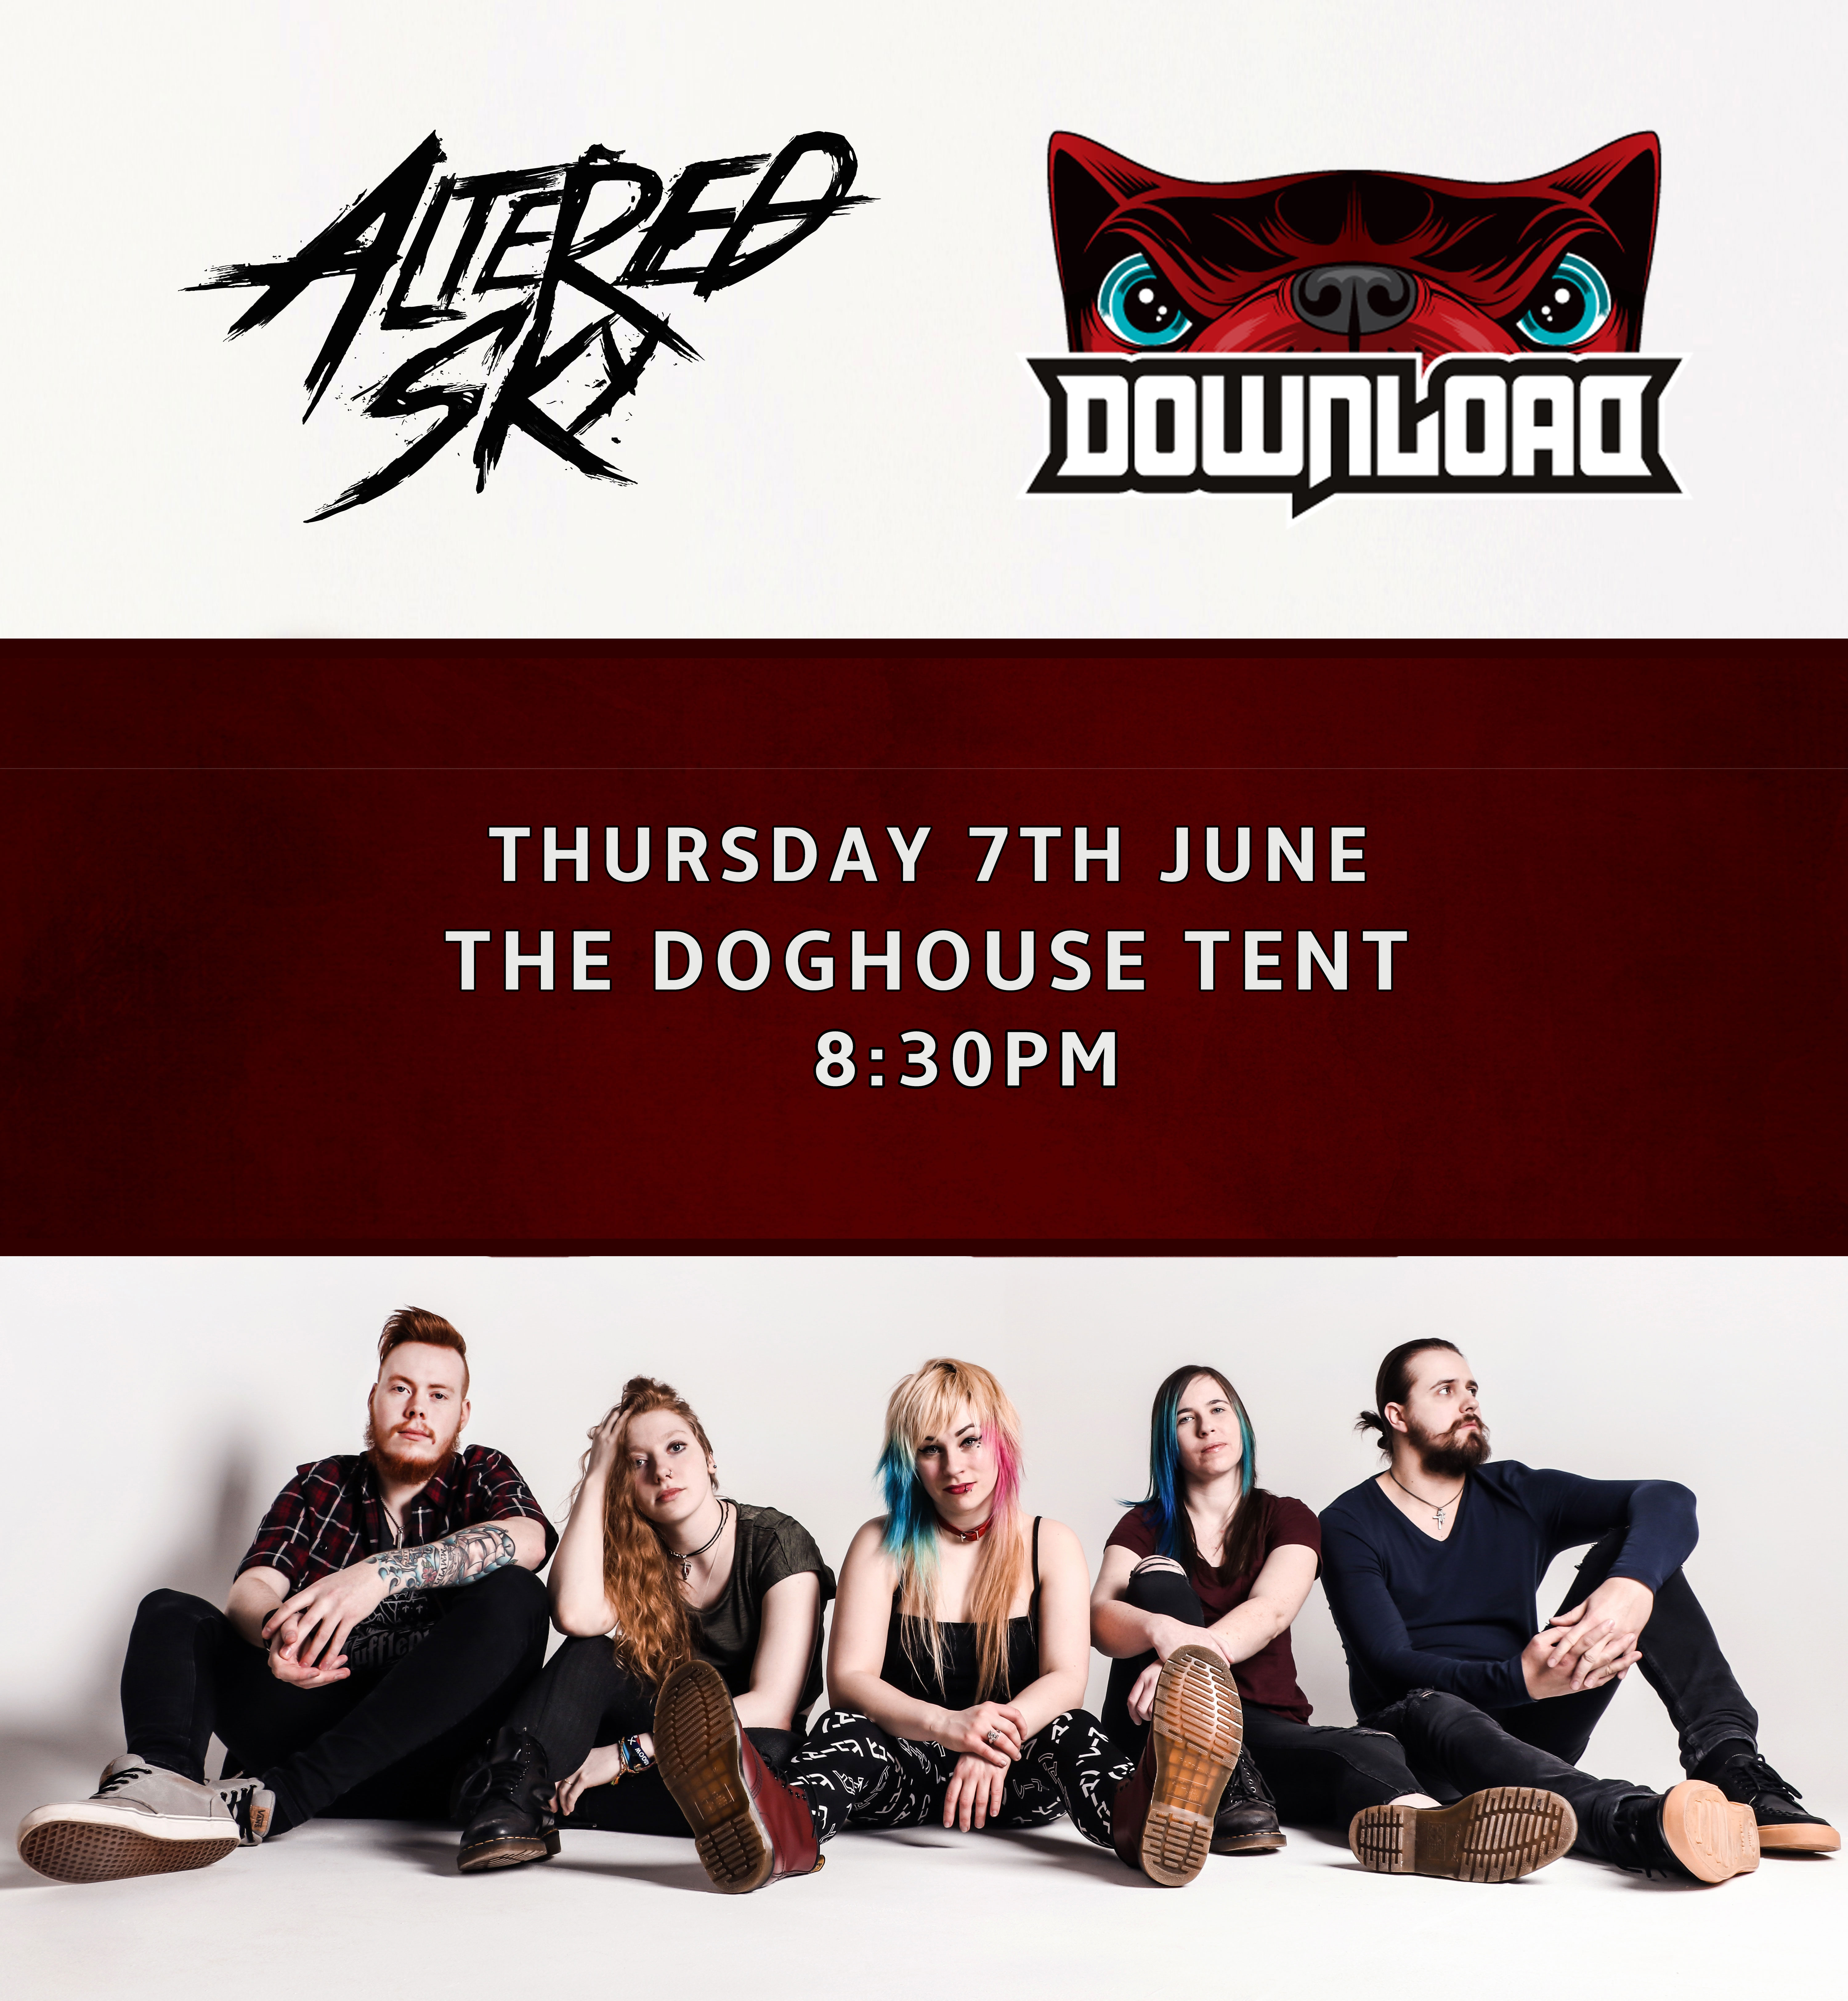 Download: The Doghouse Tent - Donnington - June 7th 2018